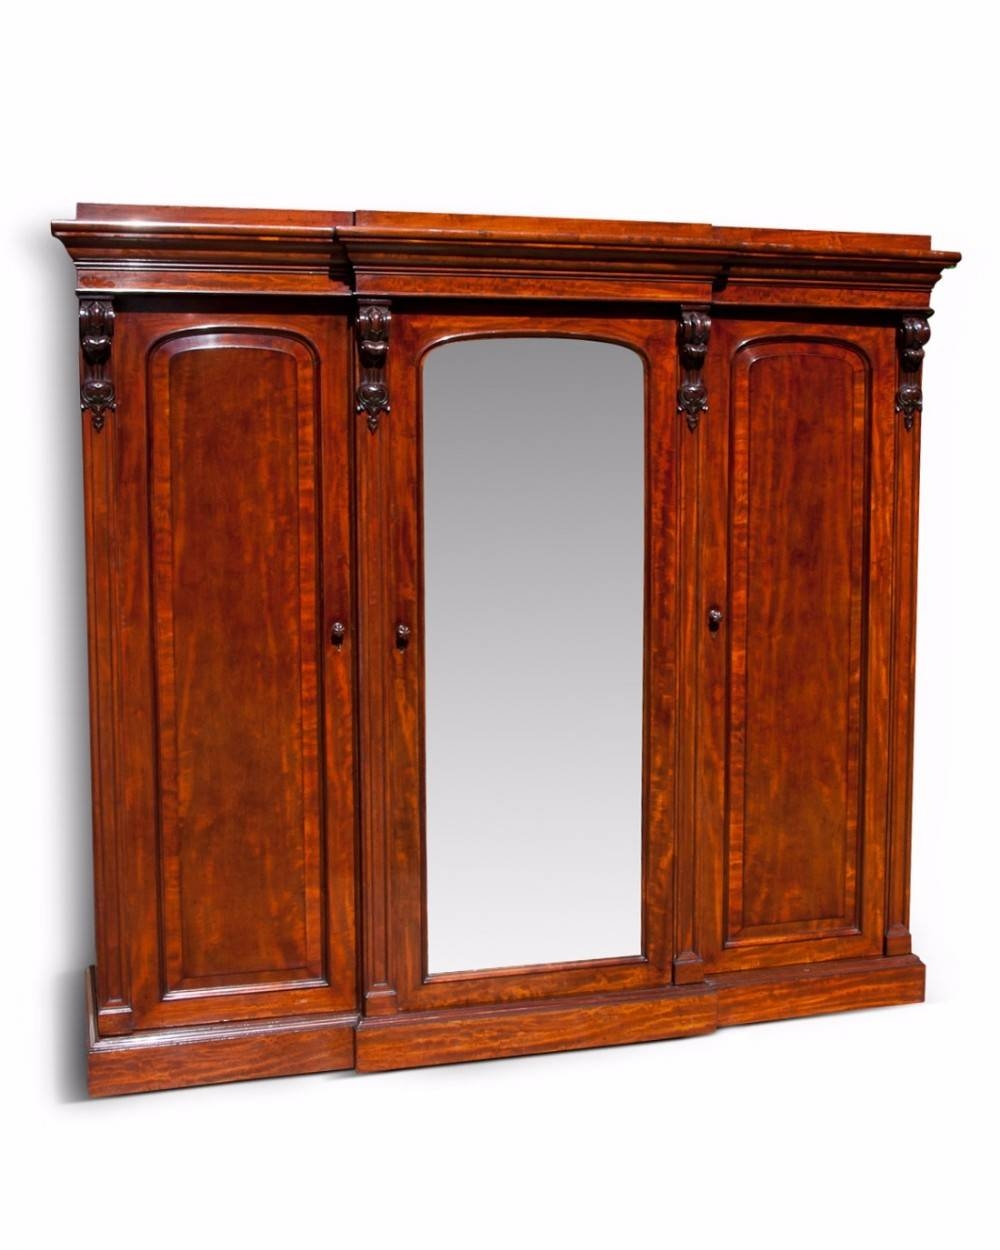 Fine Quality Victorian Mahogany Breakfront Wardrobe | 421778 with Victorian Mahogany Breakfront Wardrobe (Image 6 of 30)